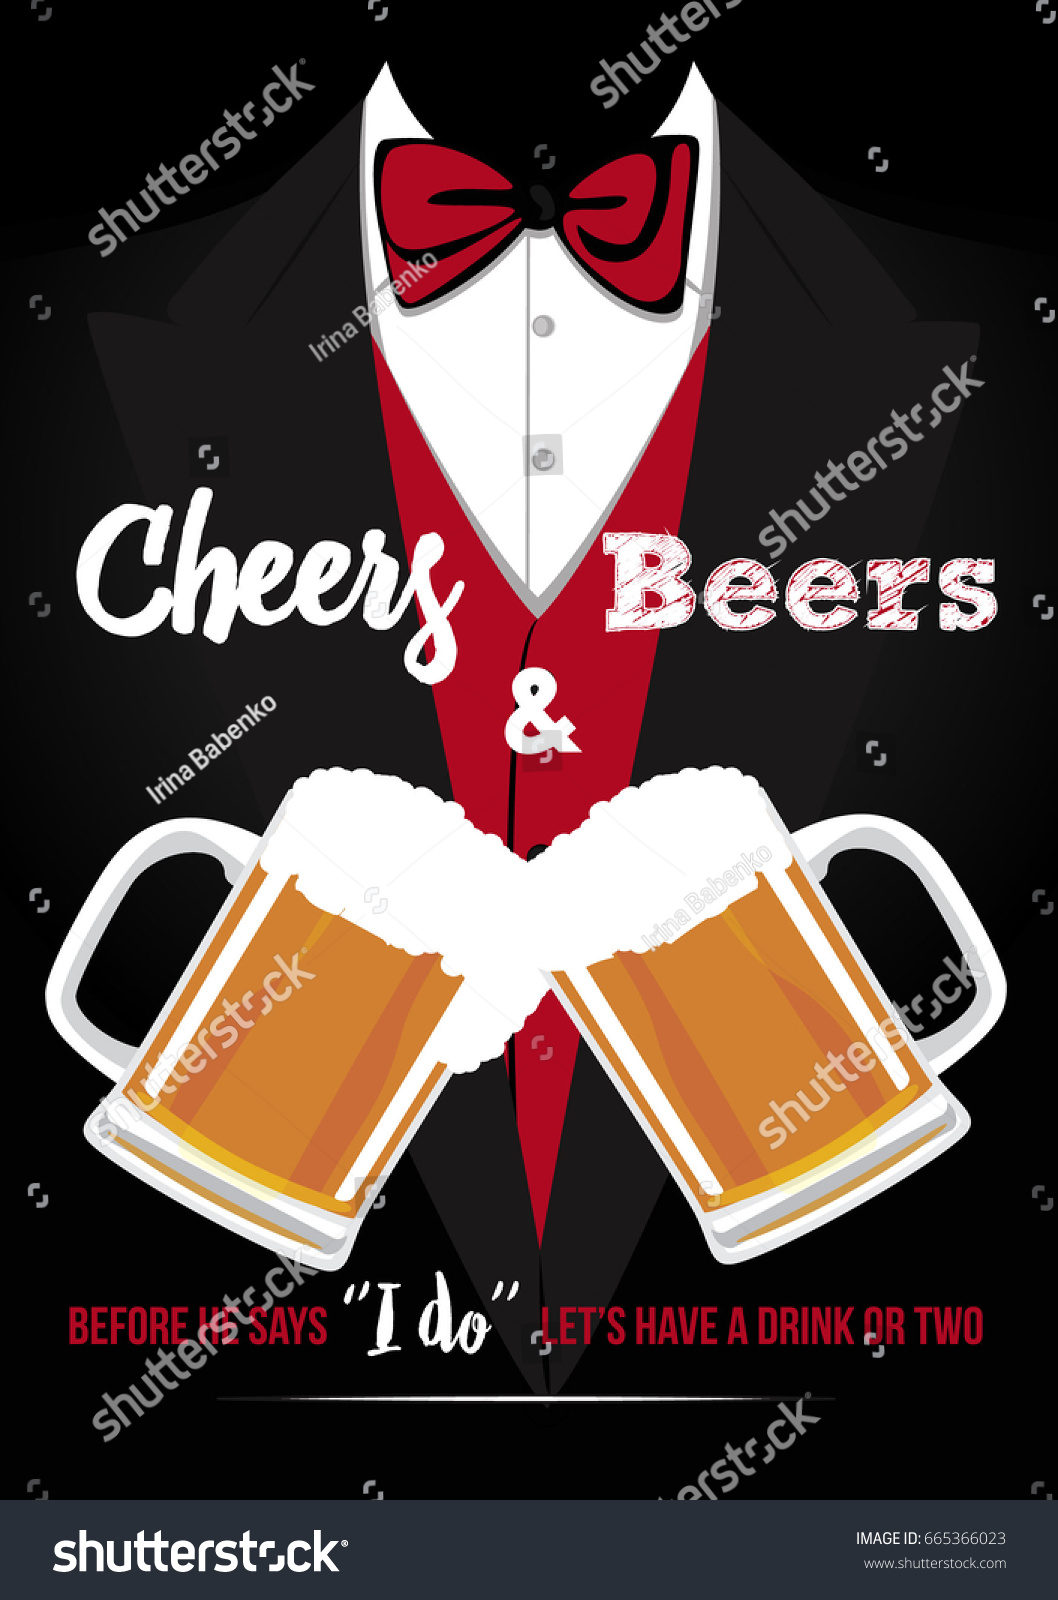 Bachelor Party Invitation Card Stock Vector (Royalty Free) 665366023 ...